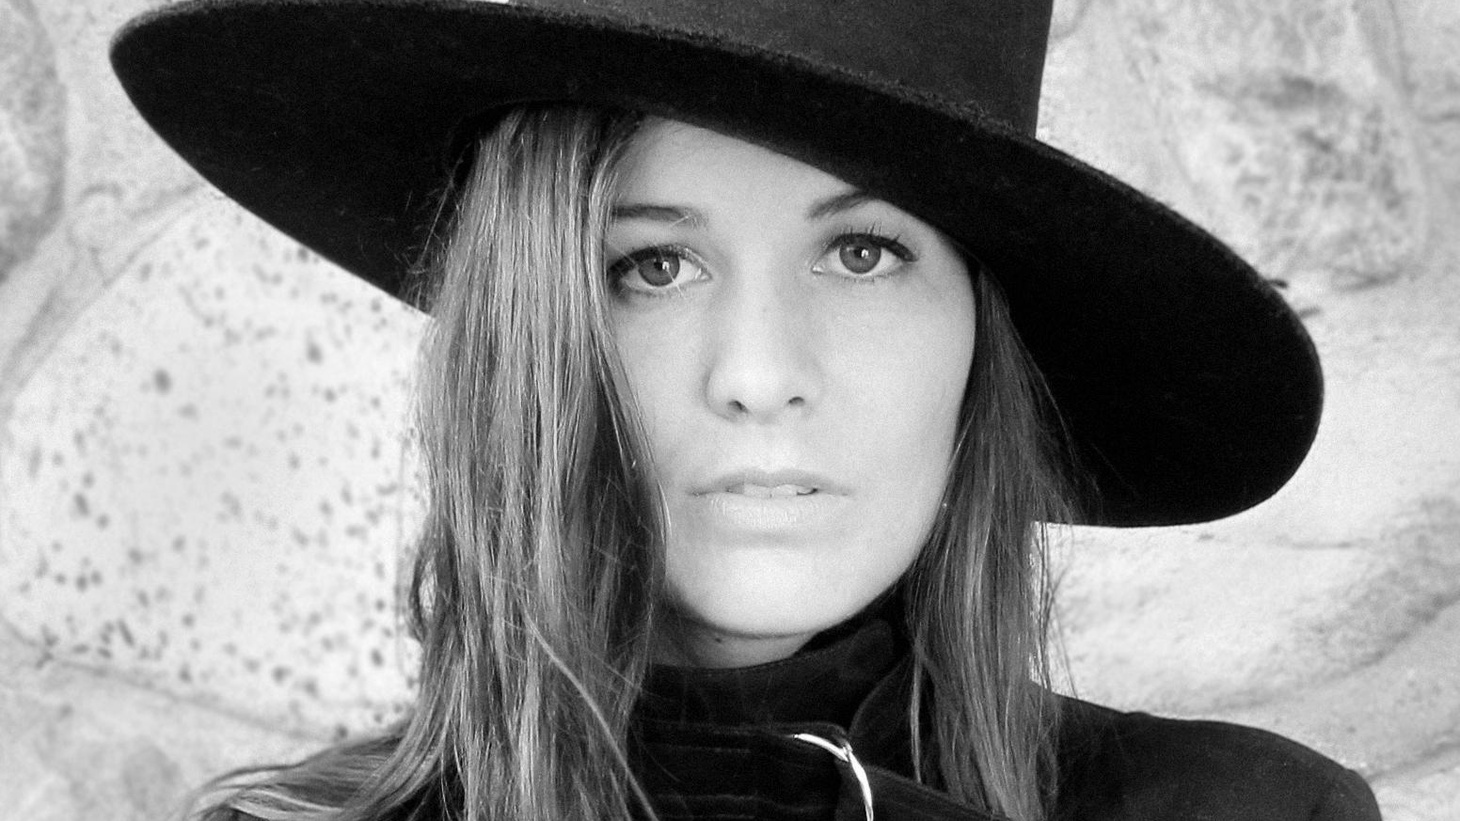 Carly Ritter grew up surrounded by music, but credits her extended musical family for the authentic sound on her debut recording.